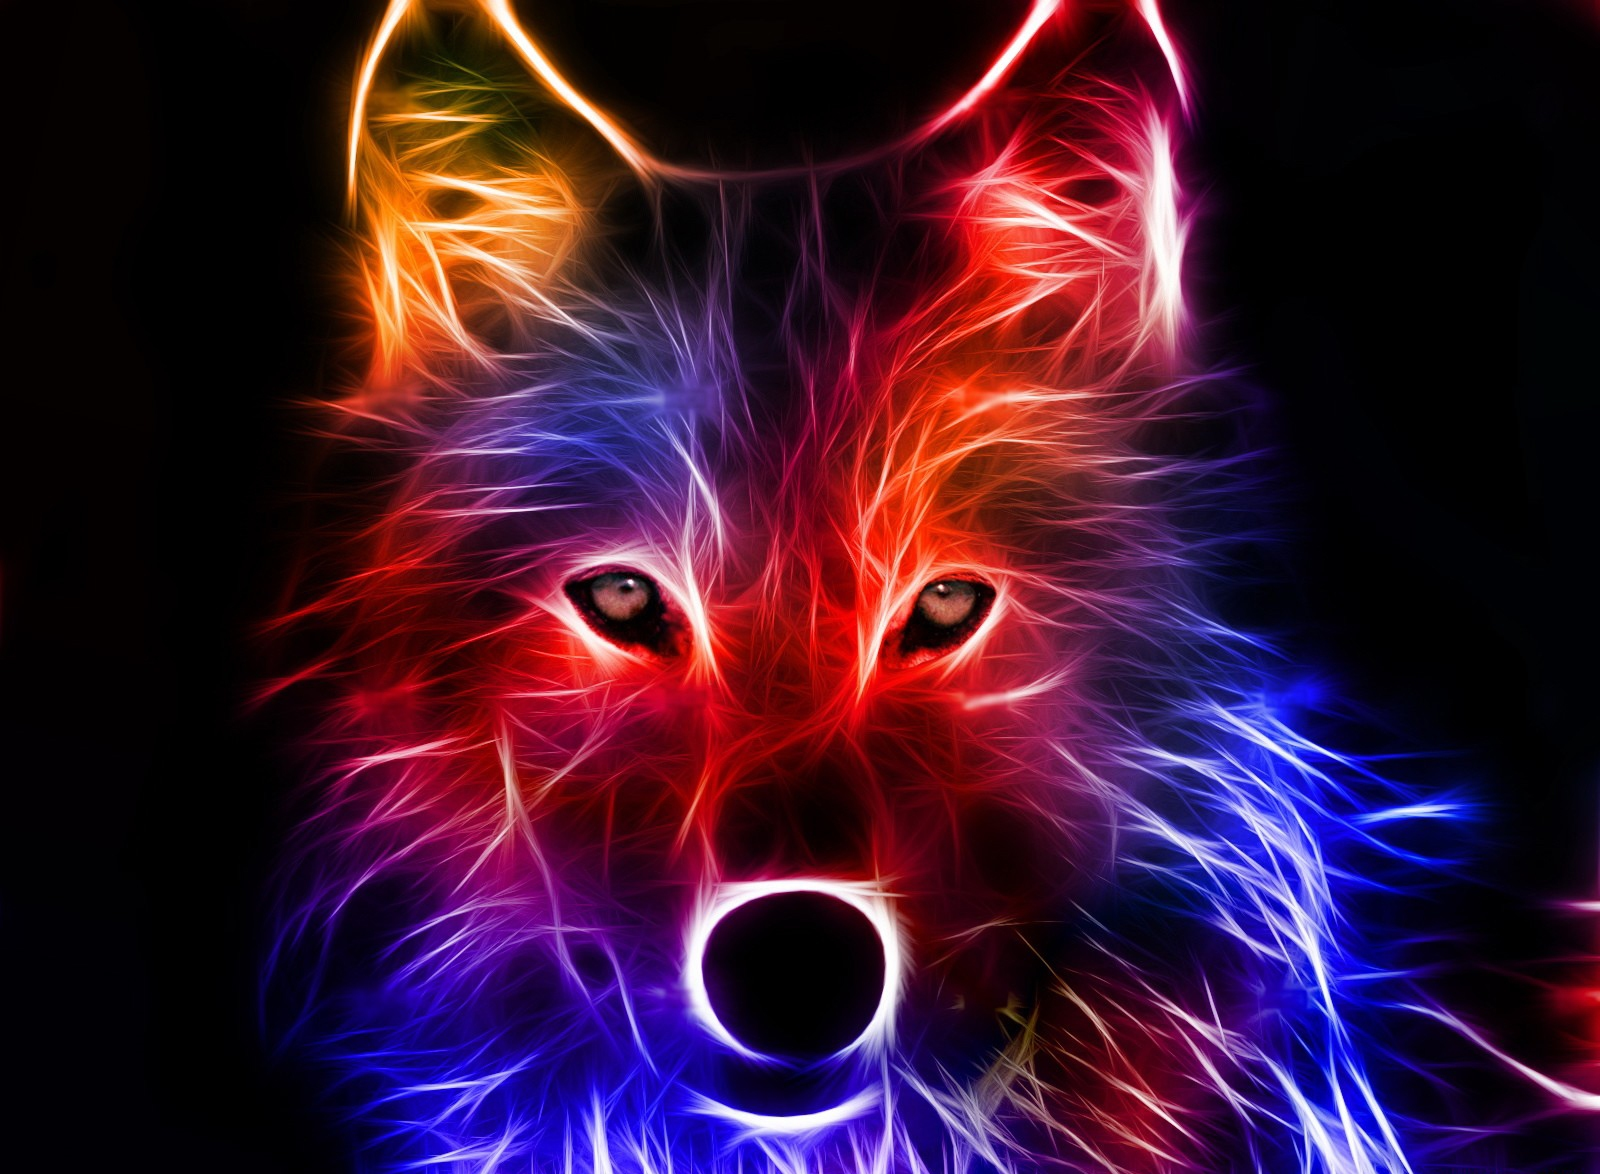 cool pictures of illuminated wolf 4237463 1600x1174 all for desktop